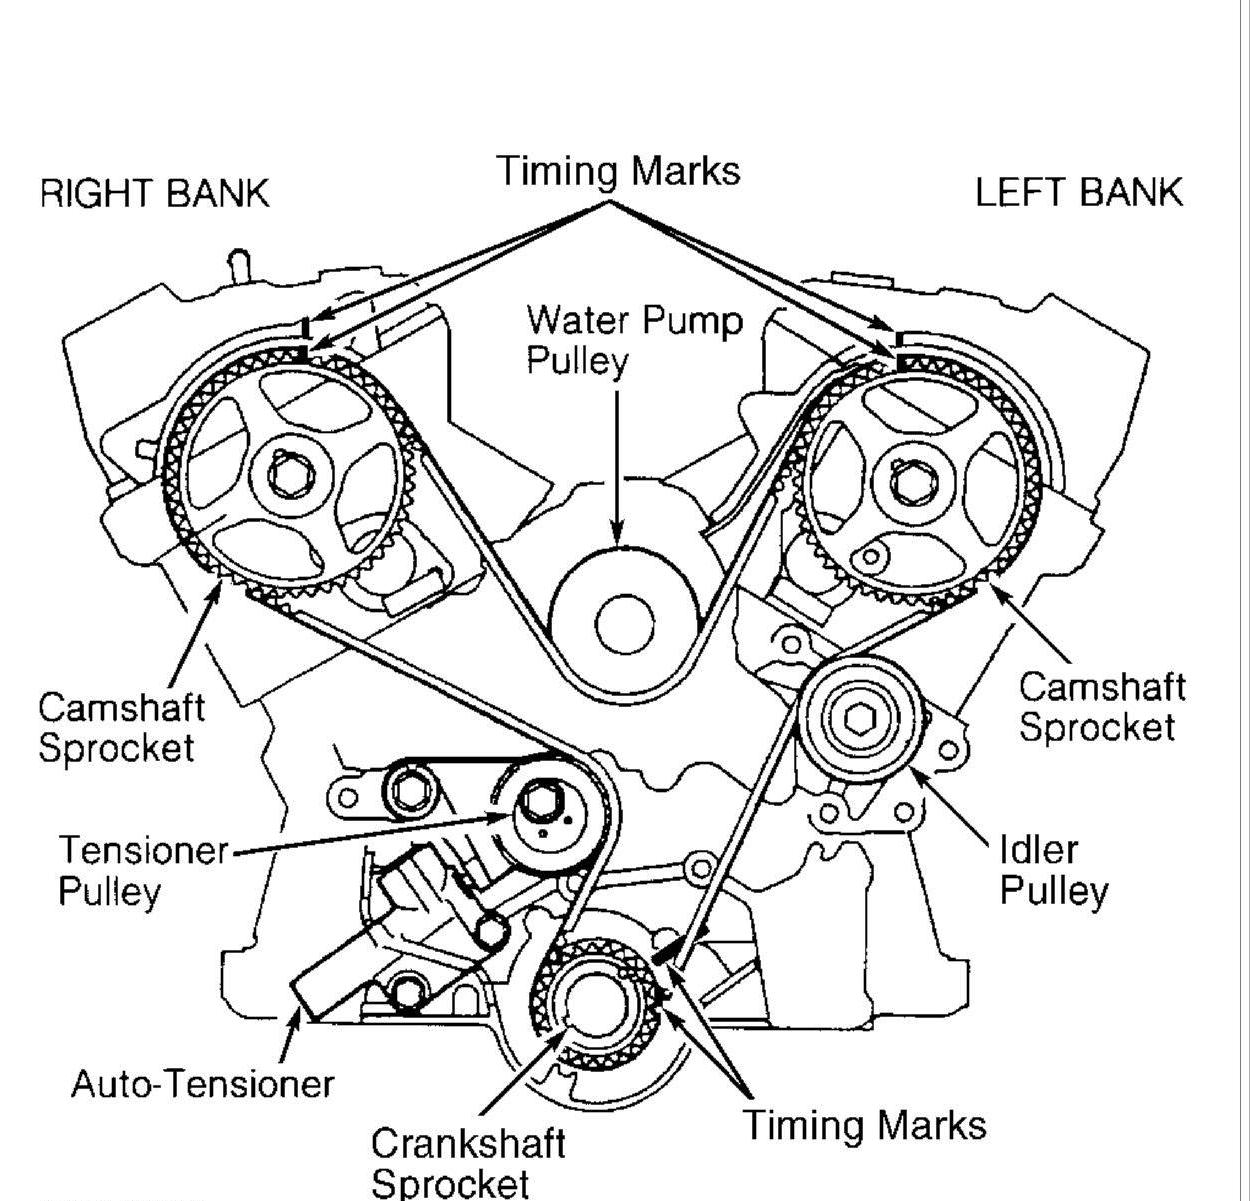 Ford 4.6 Timing Chain Marks